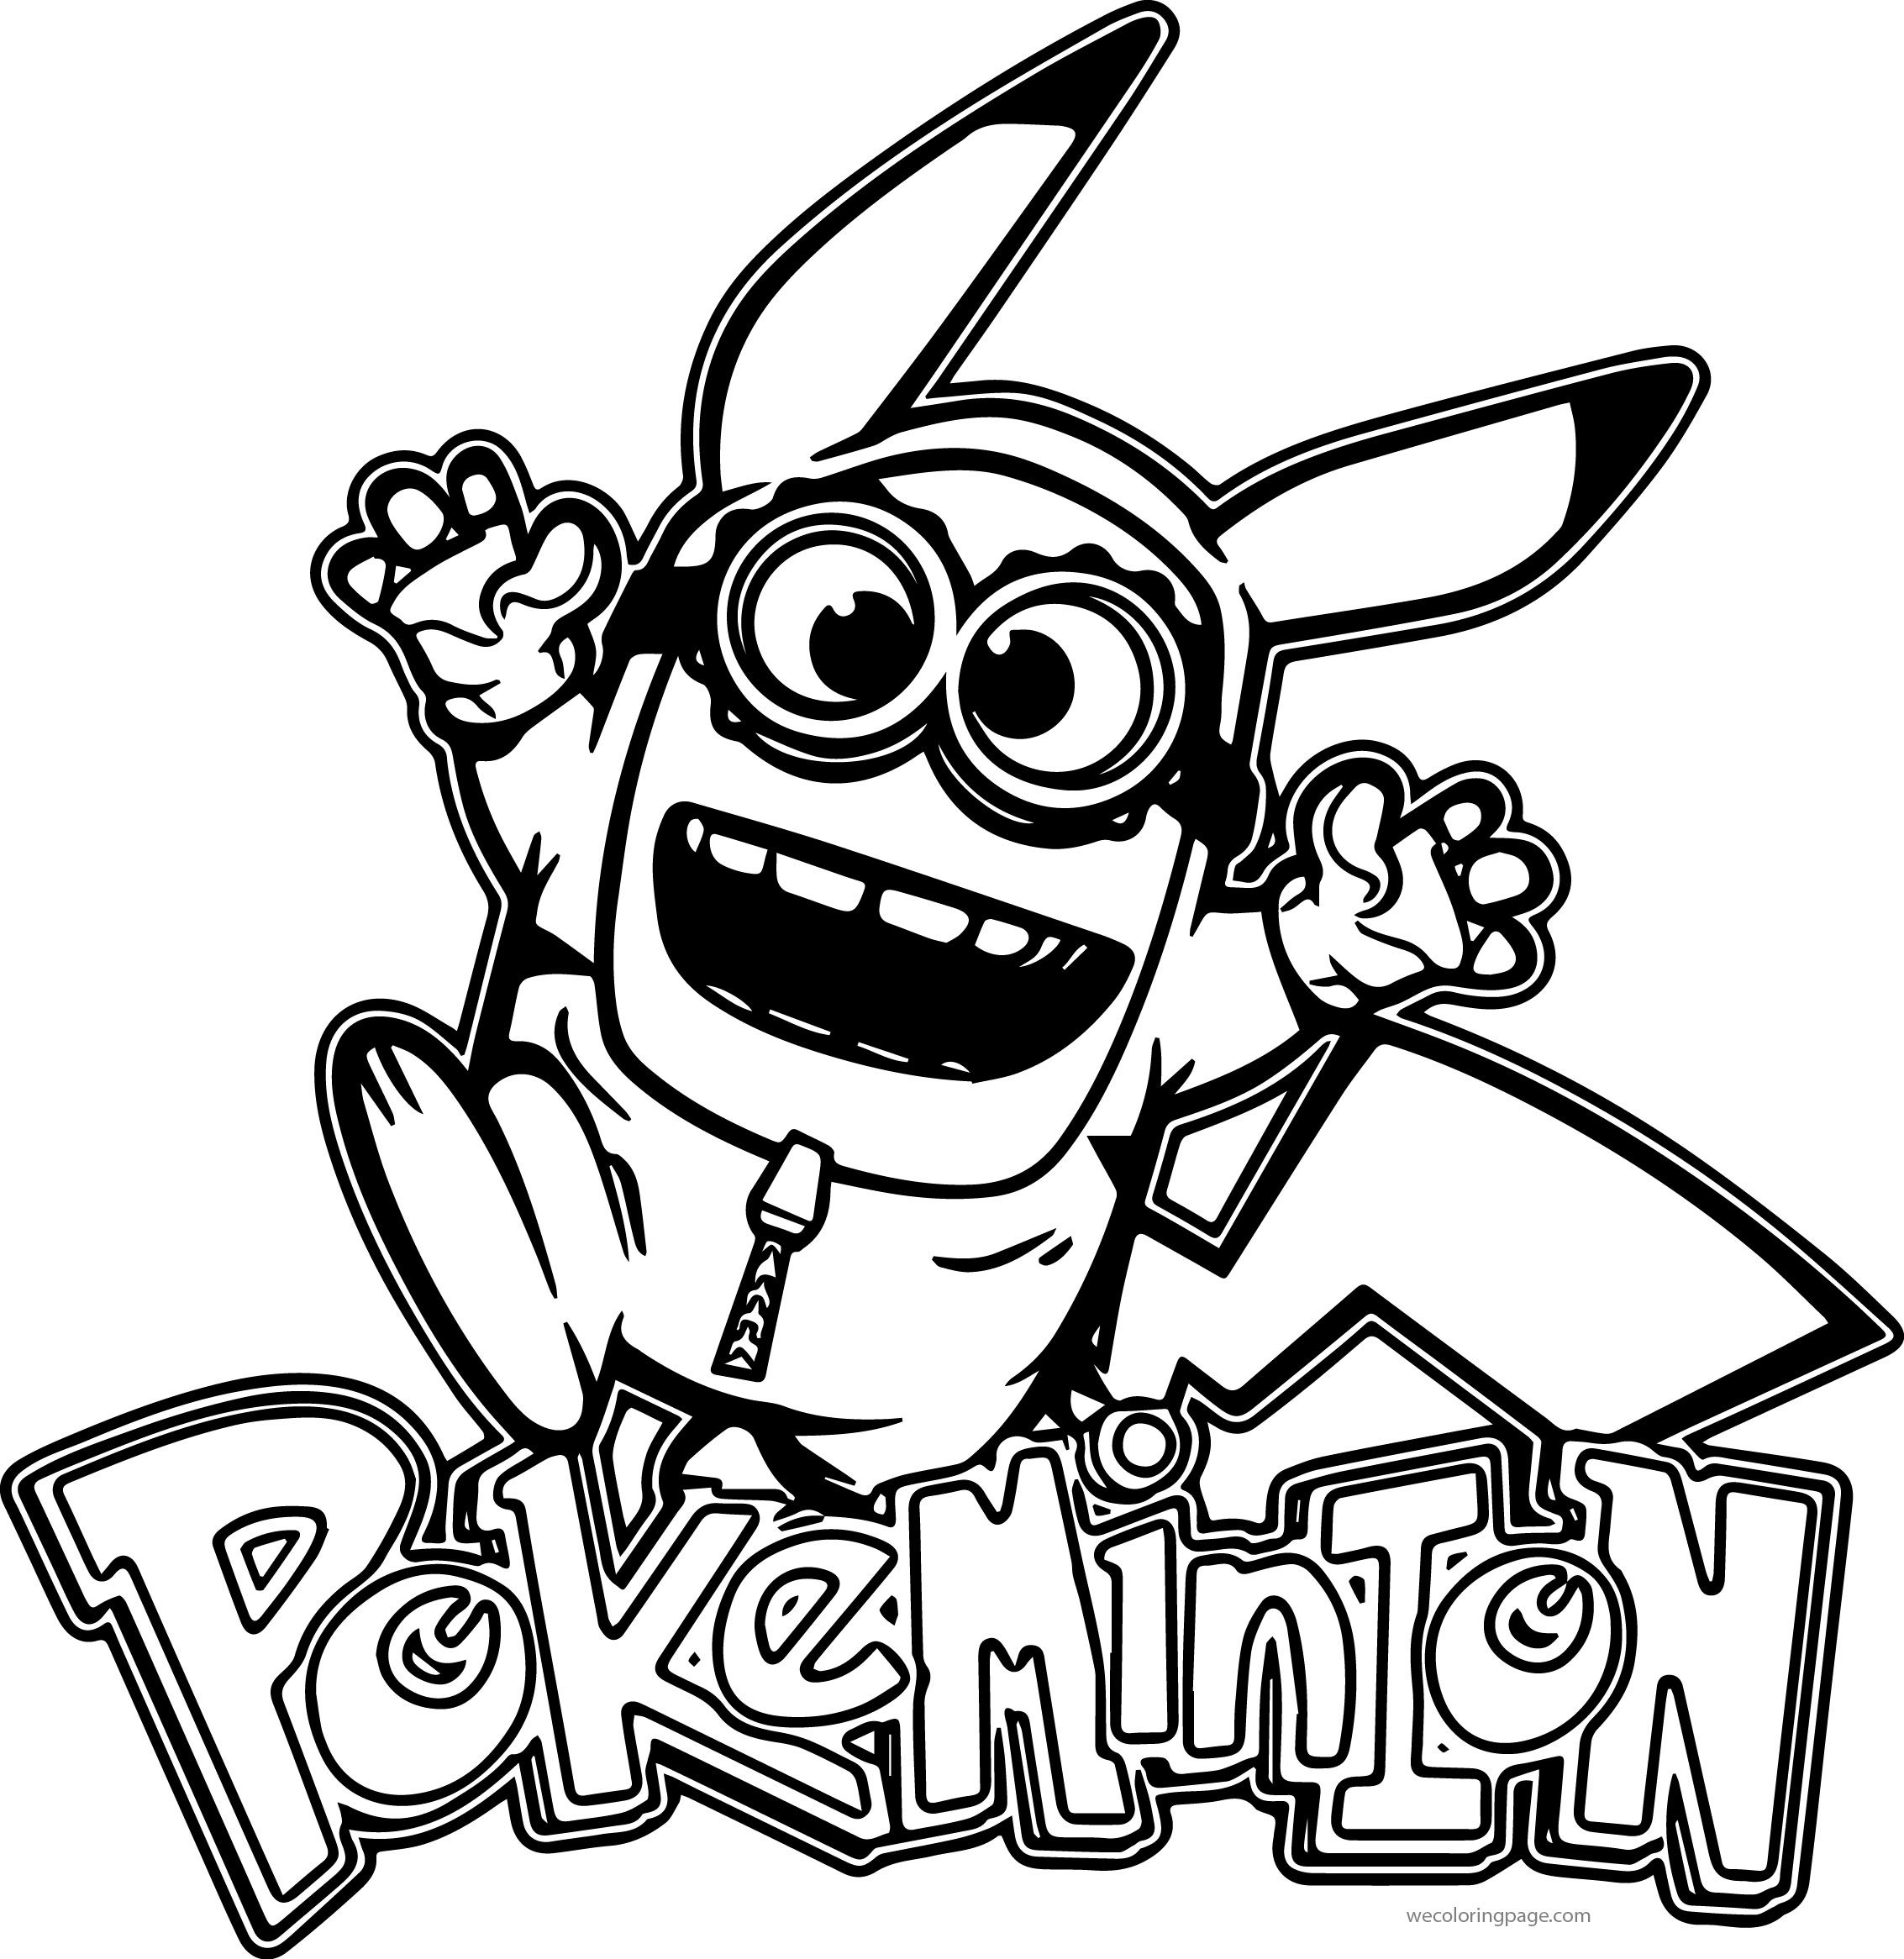 coloring minion pages minions for kids minions kids coloring pages pages coloring minion